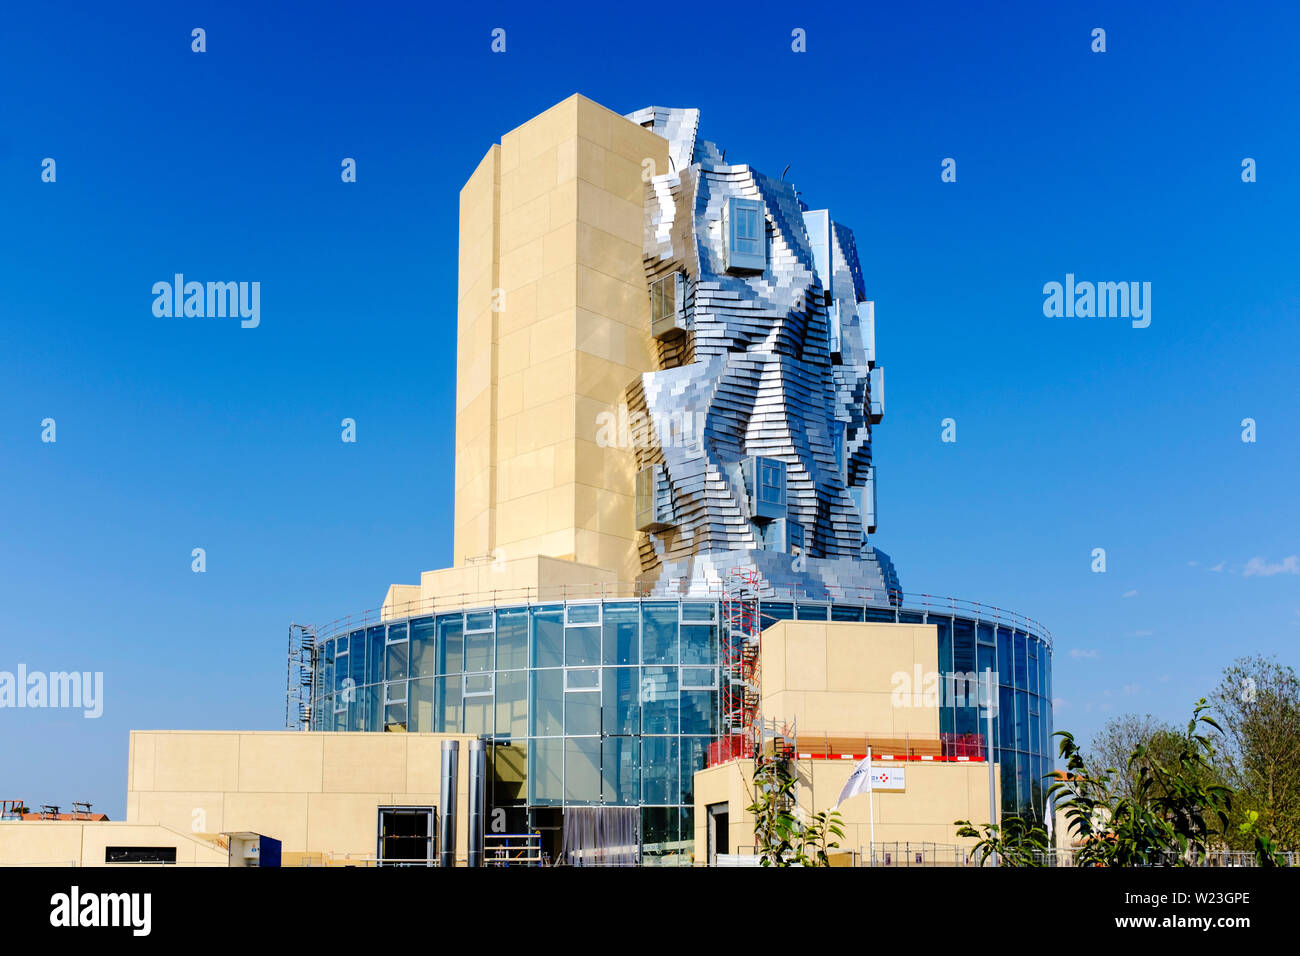 LUMA Arles building by Frank Gehry, June 2019 Stock Photo: 259463862